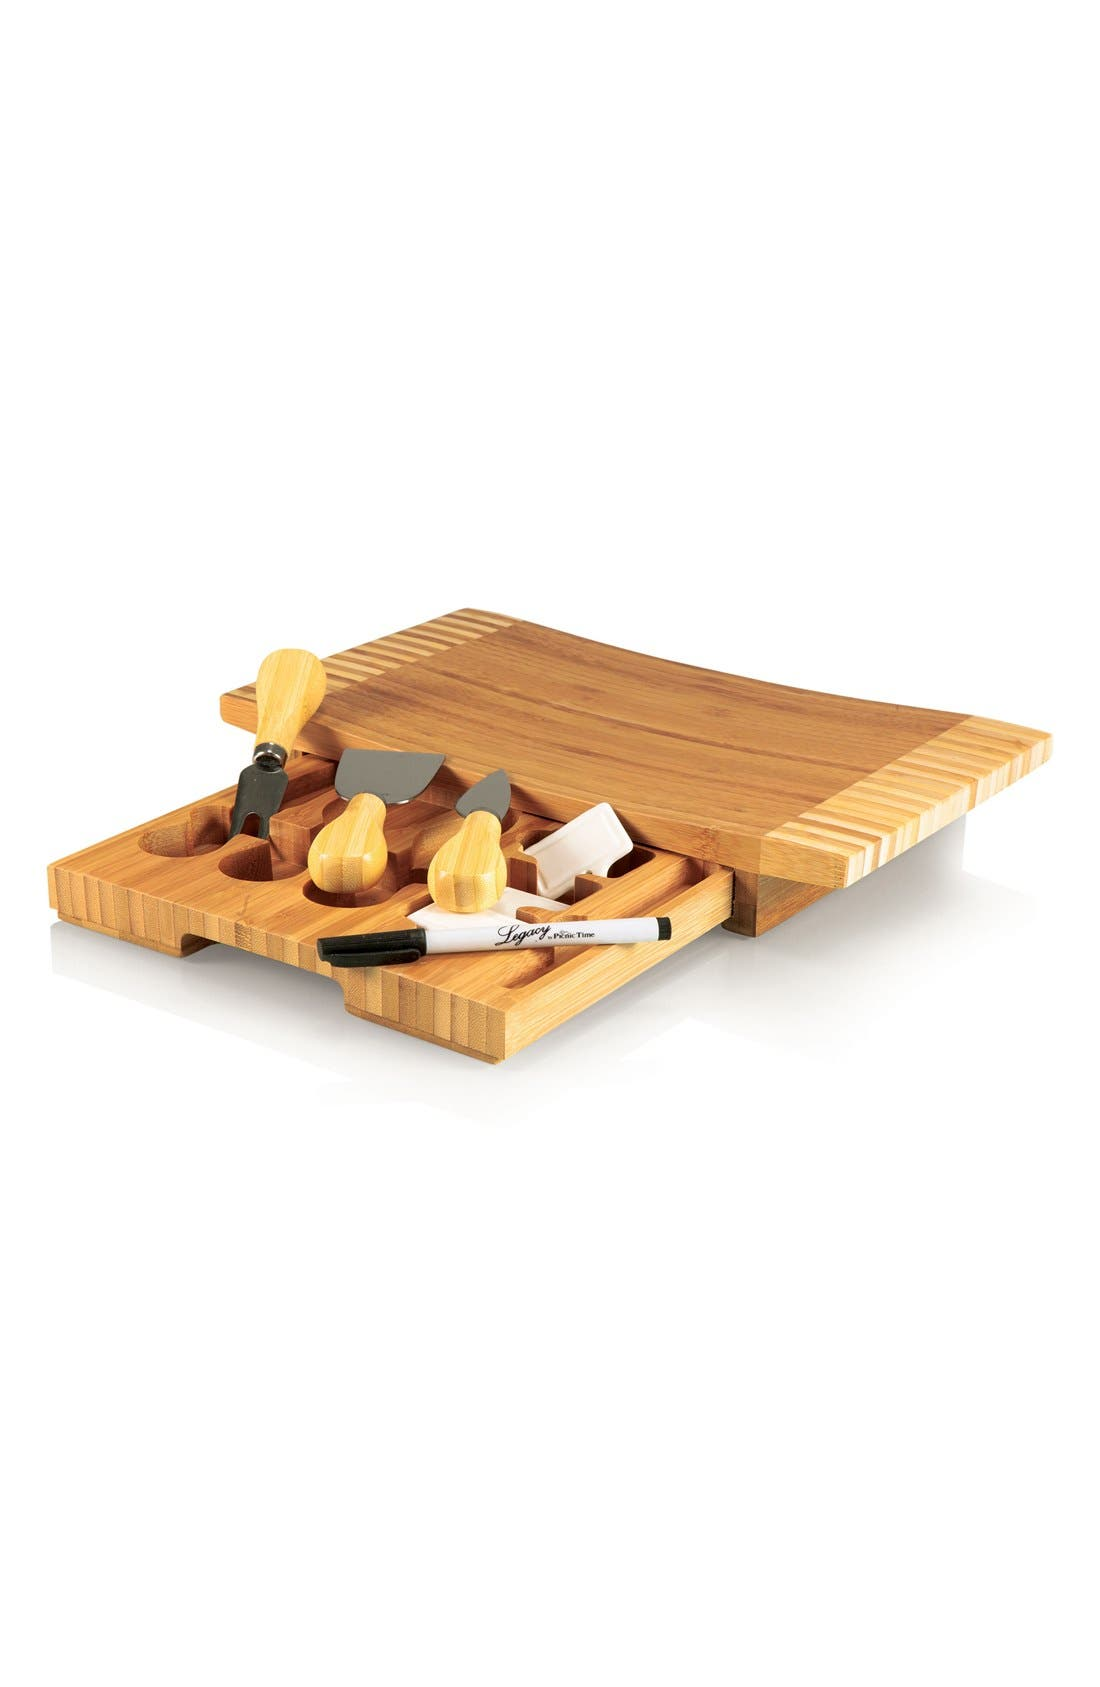 'Concavo' Cheese Board Set,                             Main thumbnail 1, color,                             200